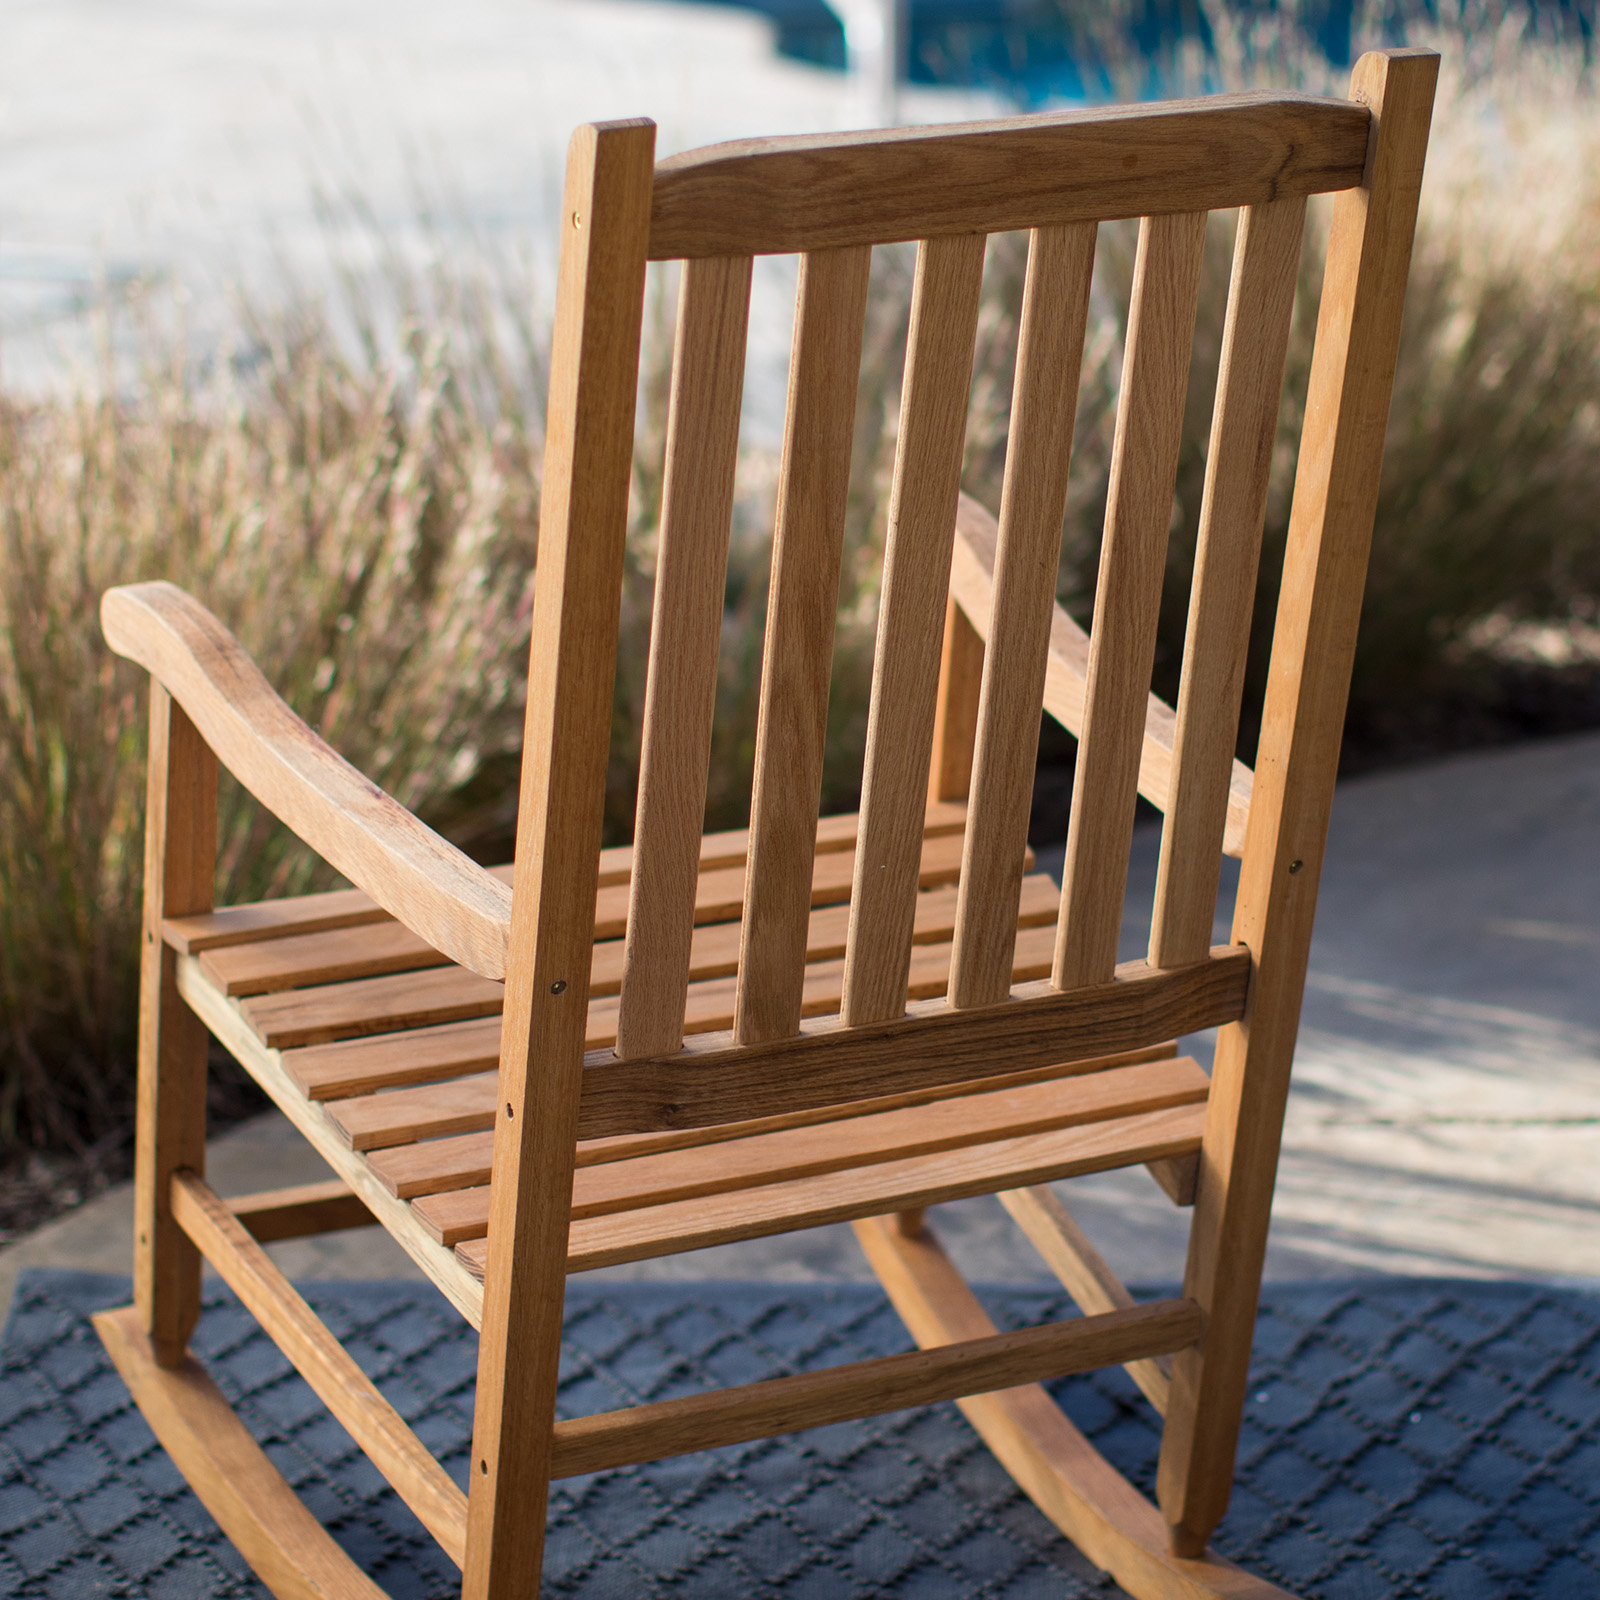 Belham Living Irwin Oak Rocking Chair. QUICK VIEW